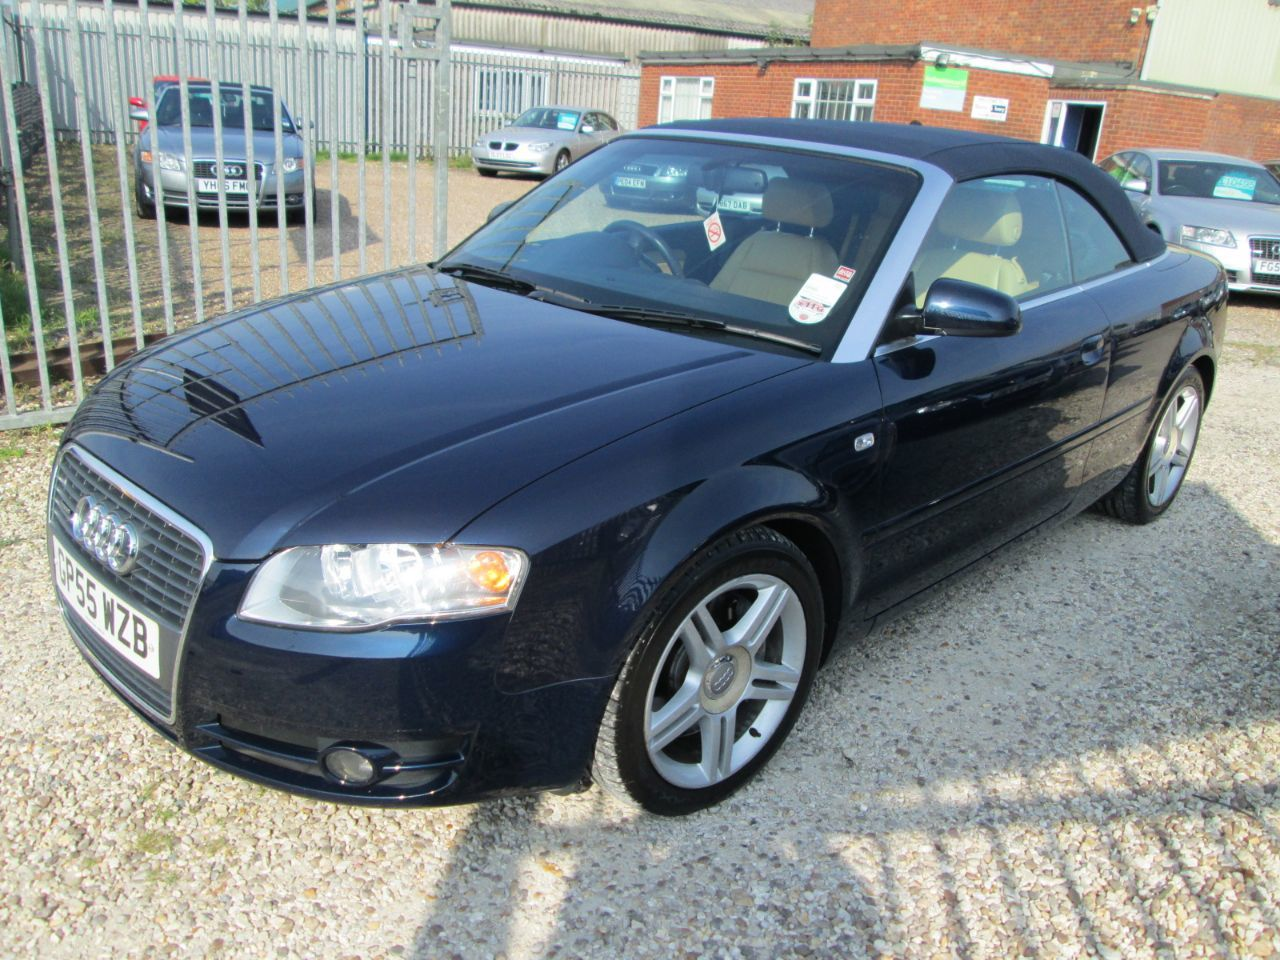 Audi A4 3.0 TDi Quattro Sport 2dr Tip Auto + CREAM LEATHER + SAT NAV + FULL AUDI SERVICE HISTORY Convertible Diesel Blue